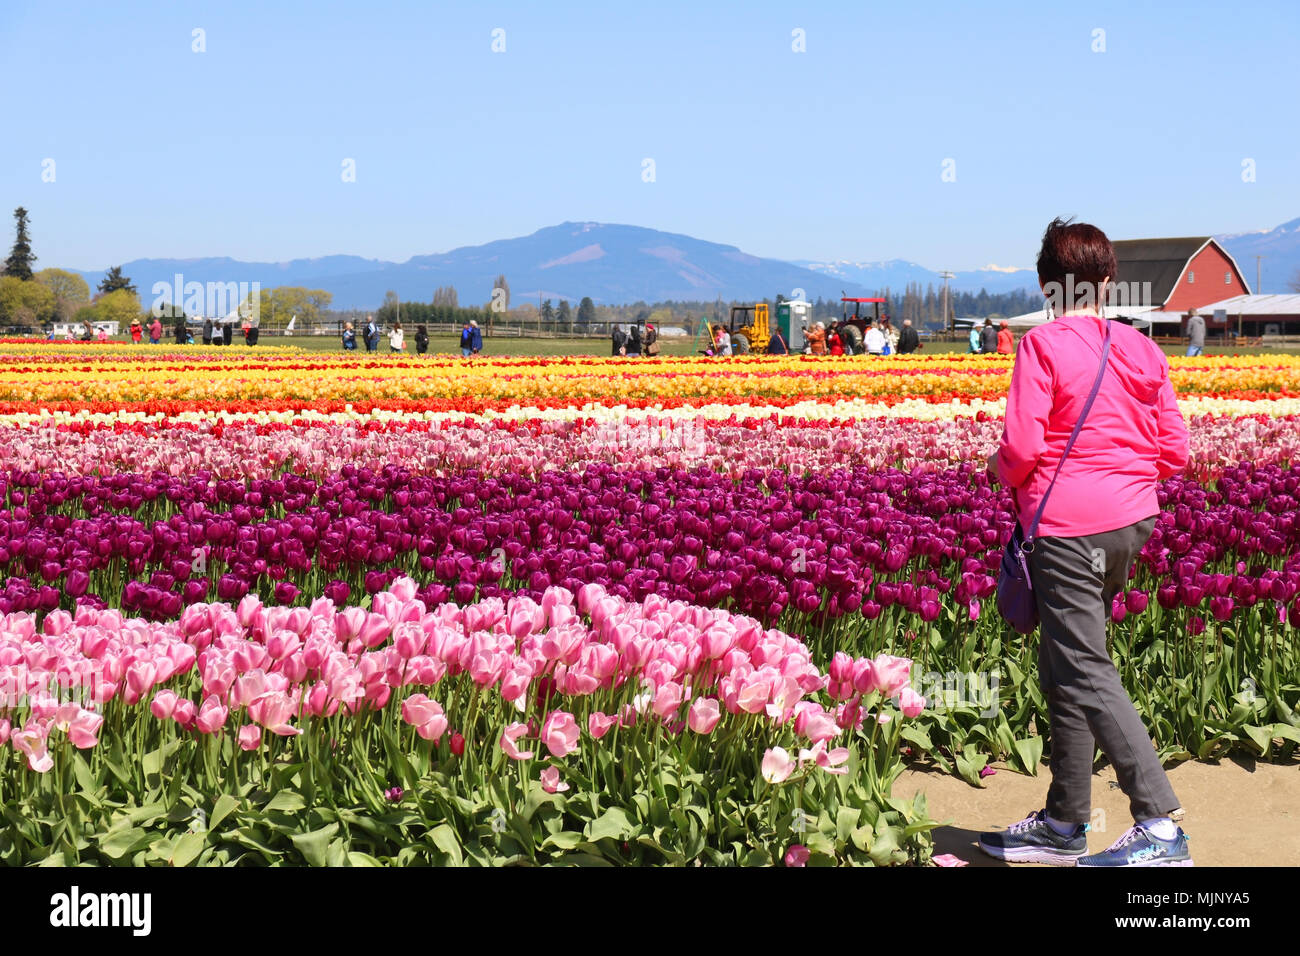 A woman standing in front of a field of tulip flowers looking at the flowers and barn.  The woman appears to be alone.  There are tourist in the backg Stock Photo